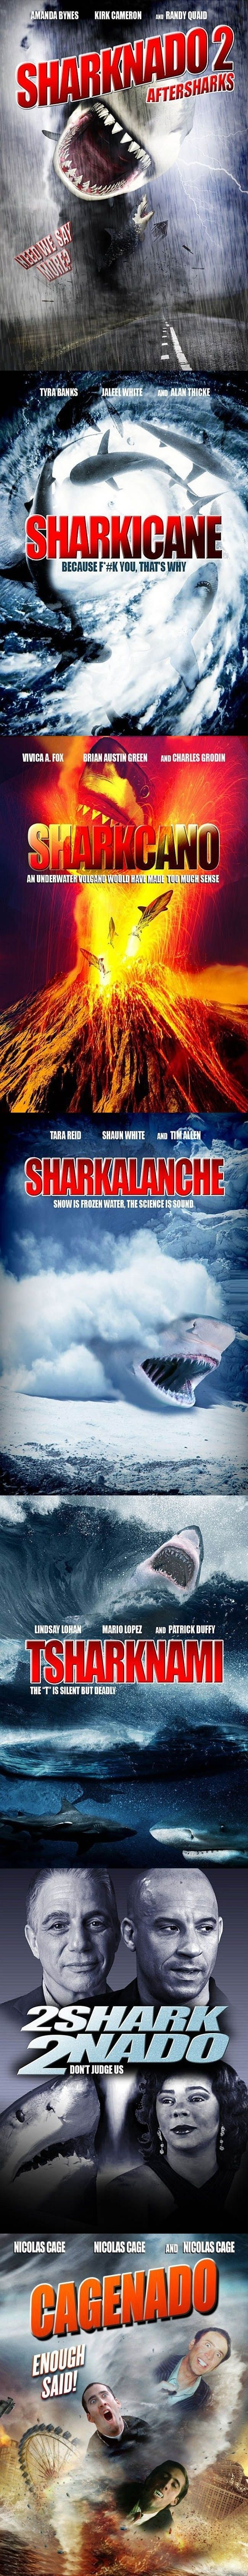 After Sharknado 1 // funny pictures - funny photos - funny images - funny pics - funny quotes - #lol #humor #funnypictures